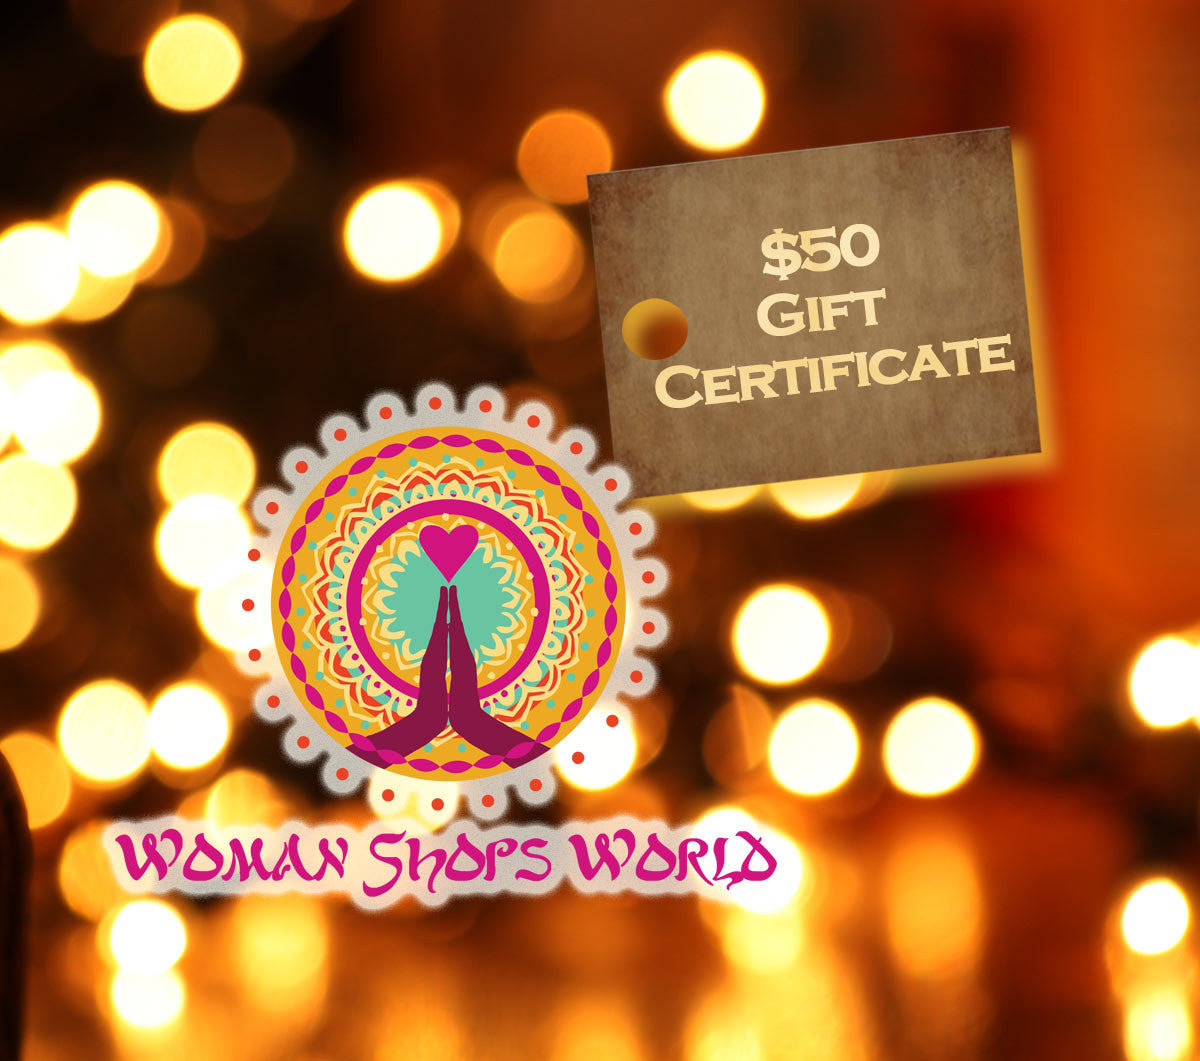 Gift Certificate: 50 Dollars from WomanShopsWorld / Worldly, Tribal Craft, Jewelry Making Supplies / For the Crafty Person on your List - ShopWomanShopsWorld.com. Bone Beads, Tassels, Pom Poms, African Beads.